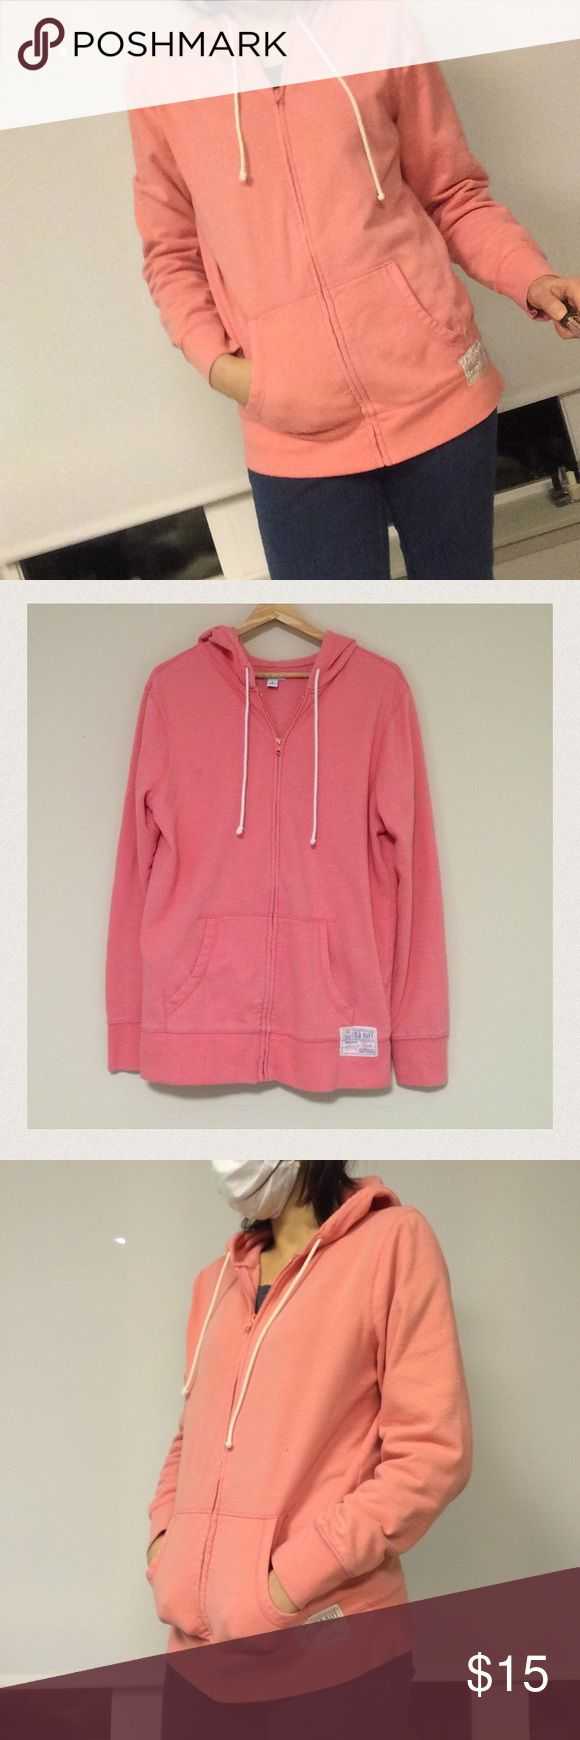 Old Navy Hoodie Salmon Pink fleece hoodie. Very comfy you can wear all year along. Size L but feels like size M. Gently used. Old Navy Other